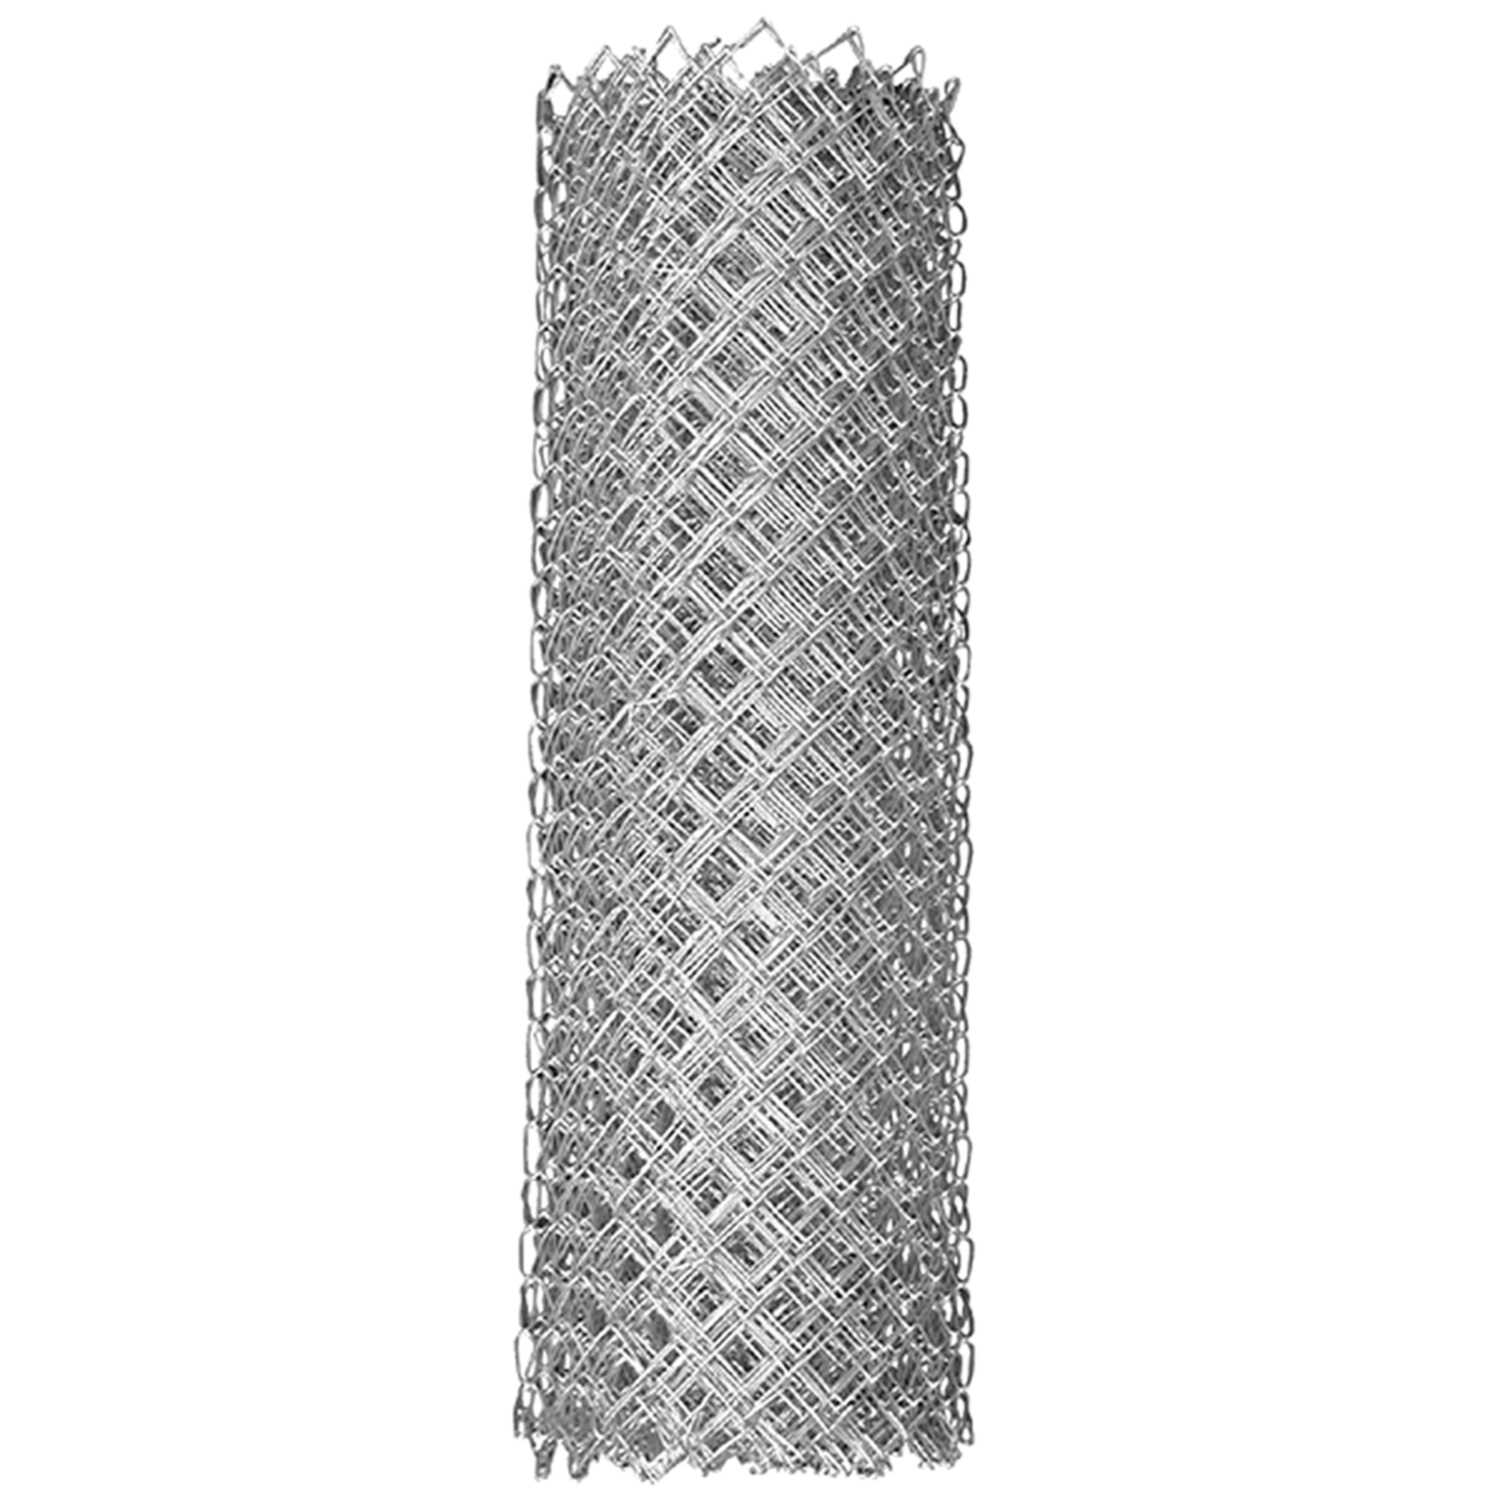 YardGard  48 in. H x 50 ft. L Steel  Chain Link  Fence  Silver